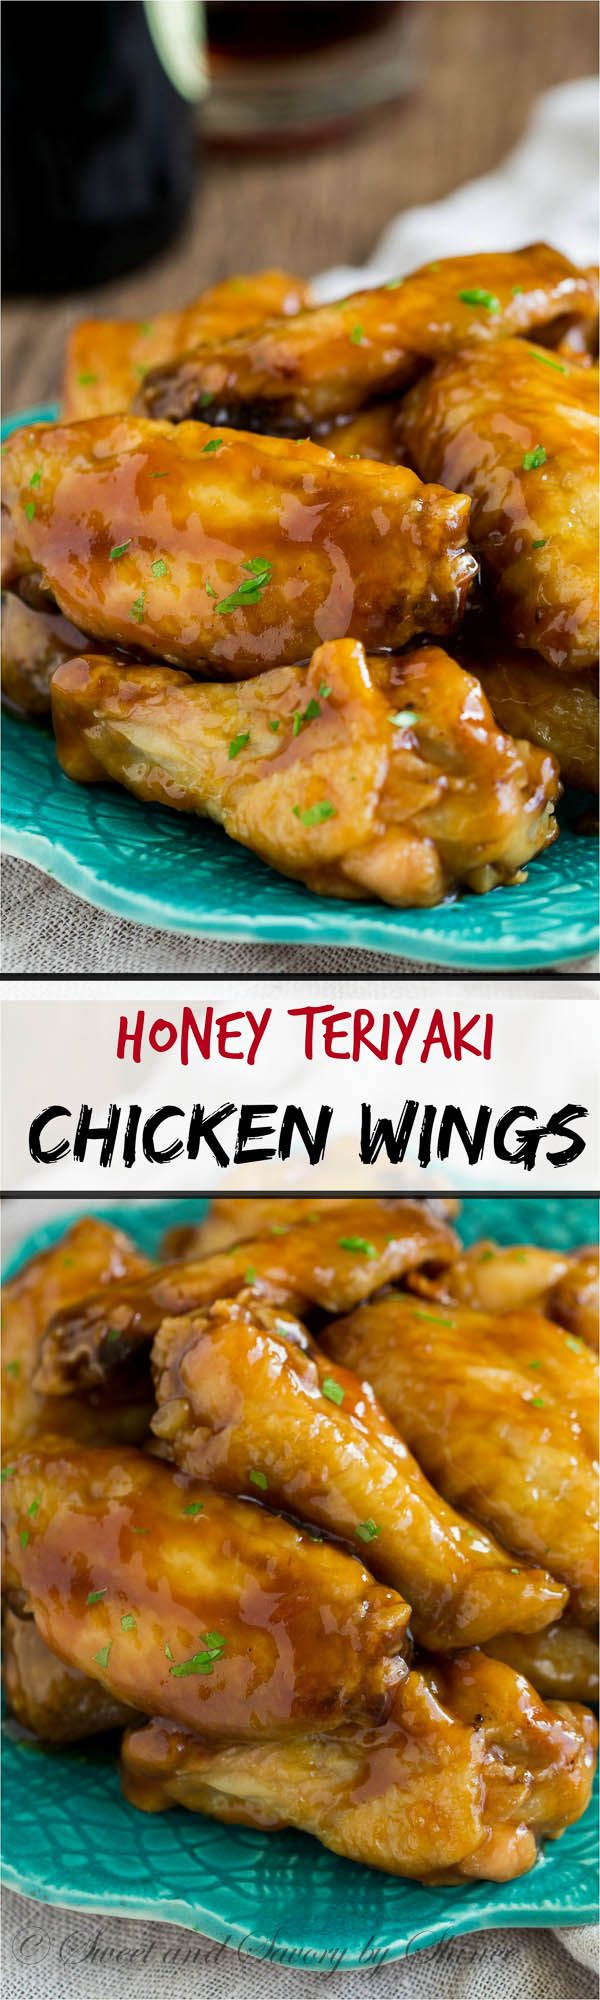 Smeared with sweet & salty homemade honey teriyaki sauce, these crispy baked chicken wings are undeniably one of the best (yet messiest) game-day foods!